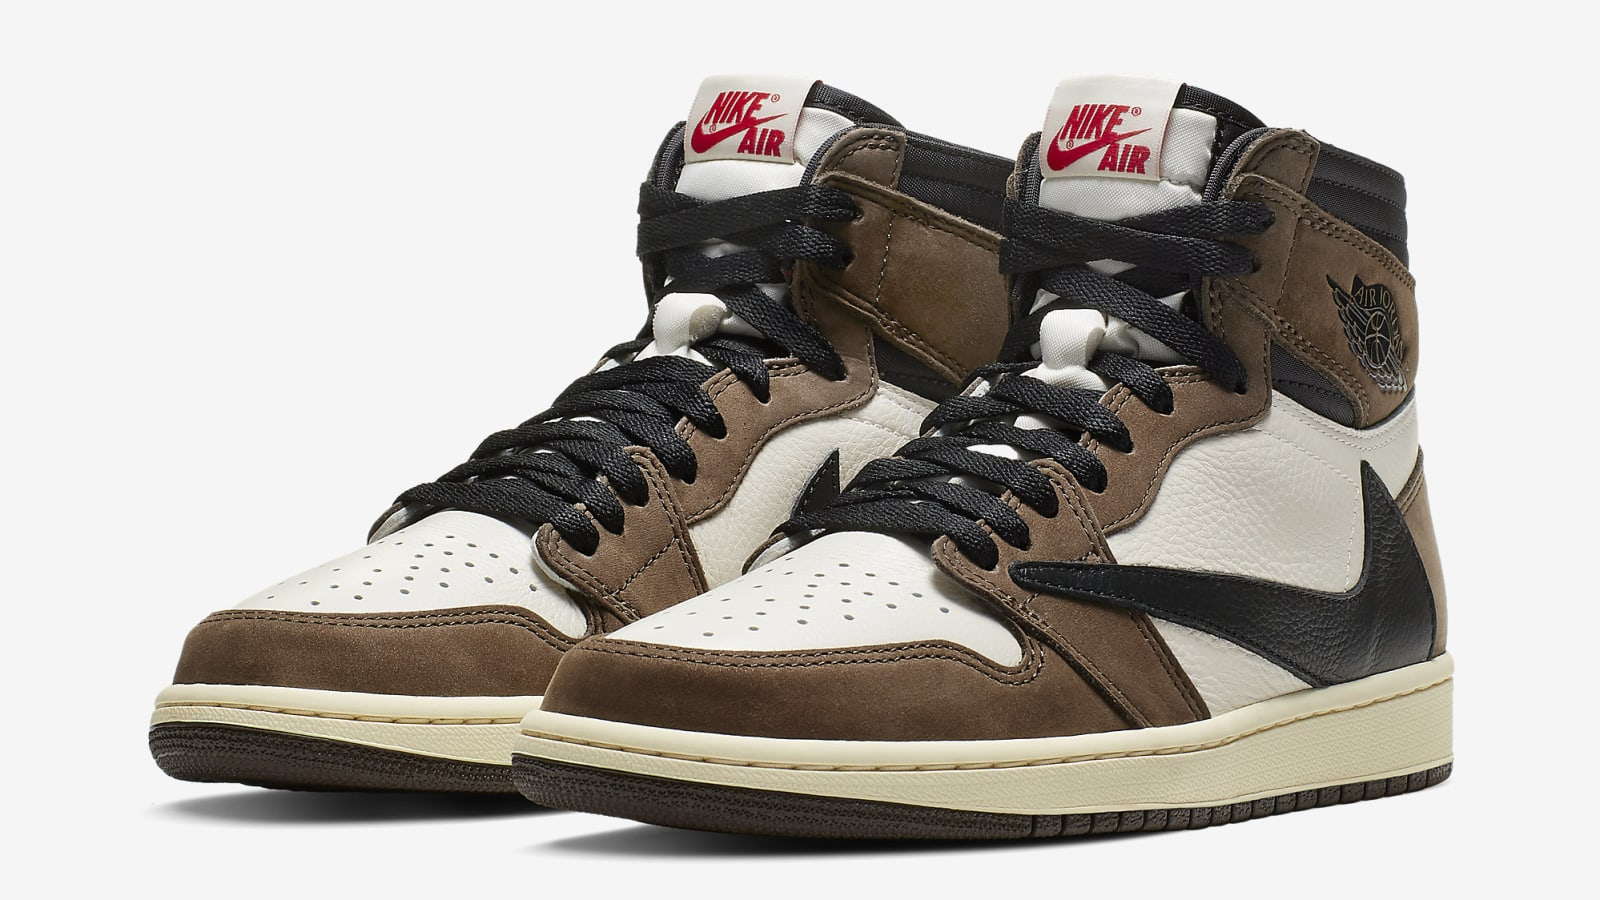 travis-scott-air-jordan-1-brown-release-date-cd4487-100-pair